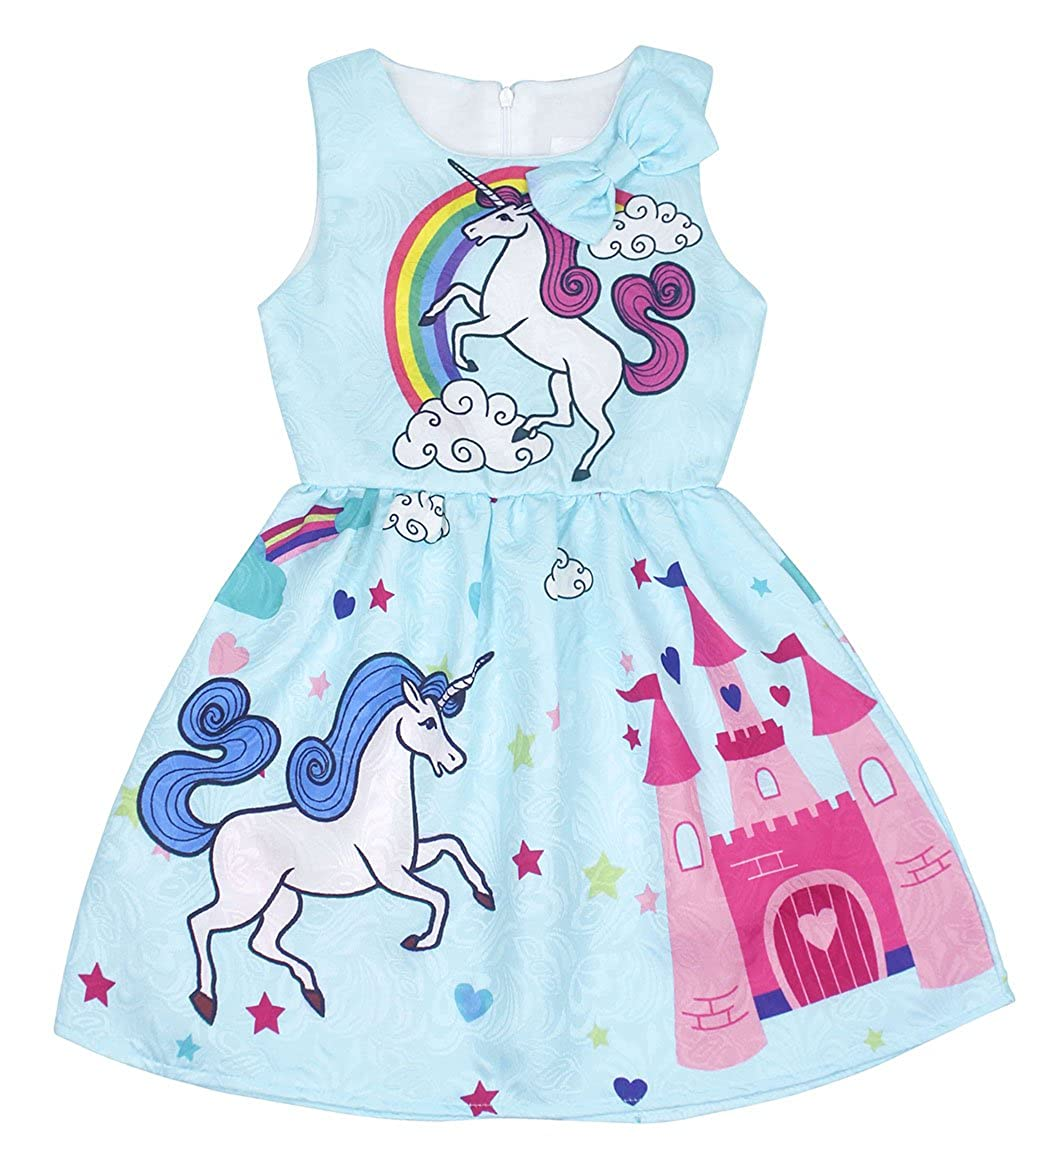 Jurebecia Unicorn Rainbow Dress Kids Sleeveless Birthday Party Pleated Outfits